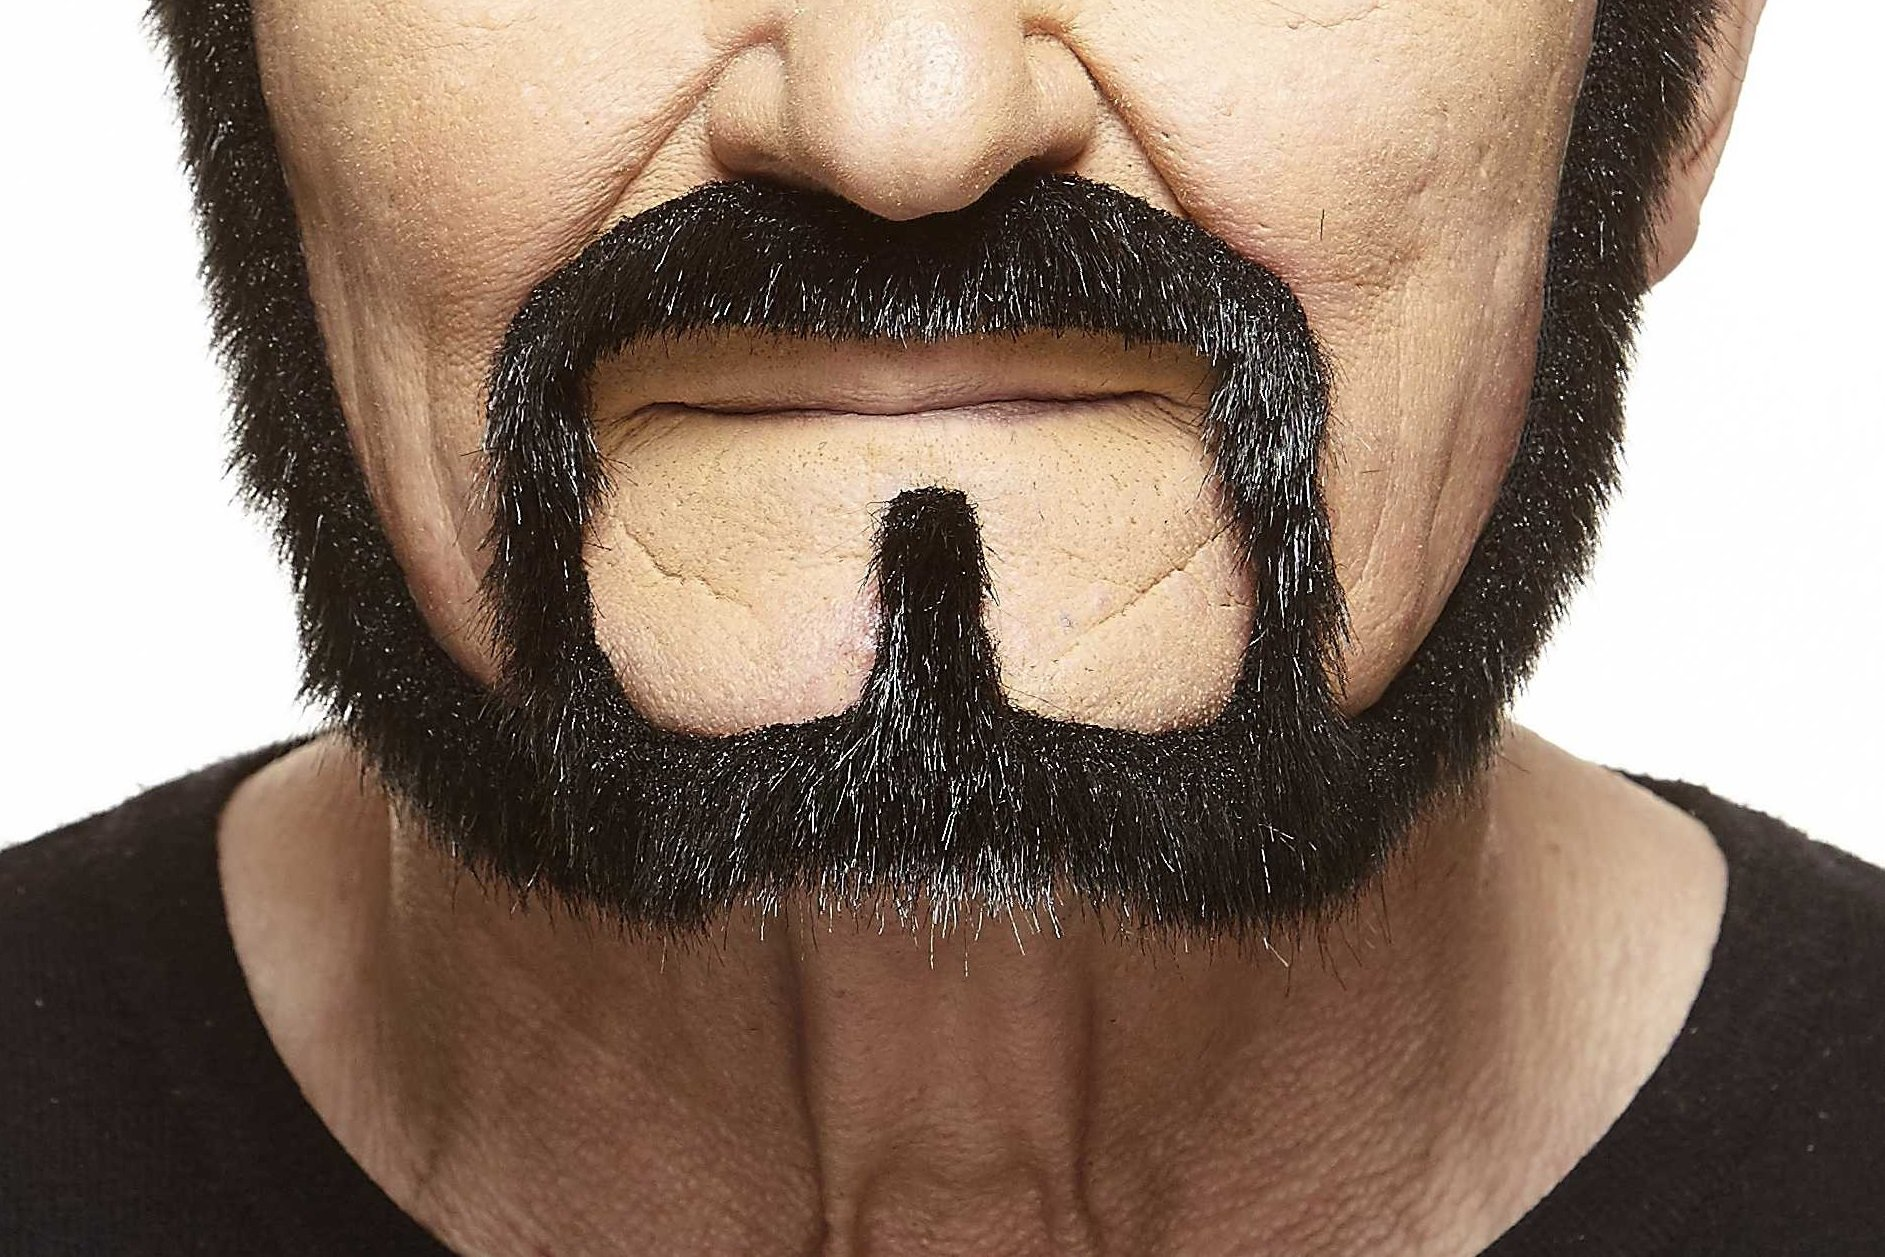 Mustaches Self Adhesive, Novelty, Fake Squatter Beard, Black Lustrous Color